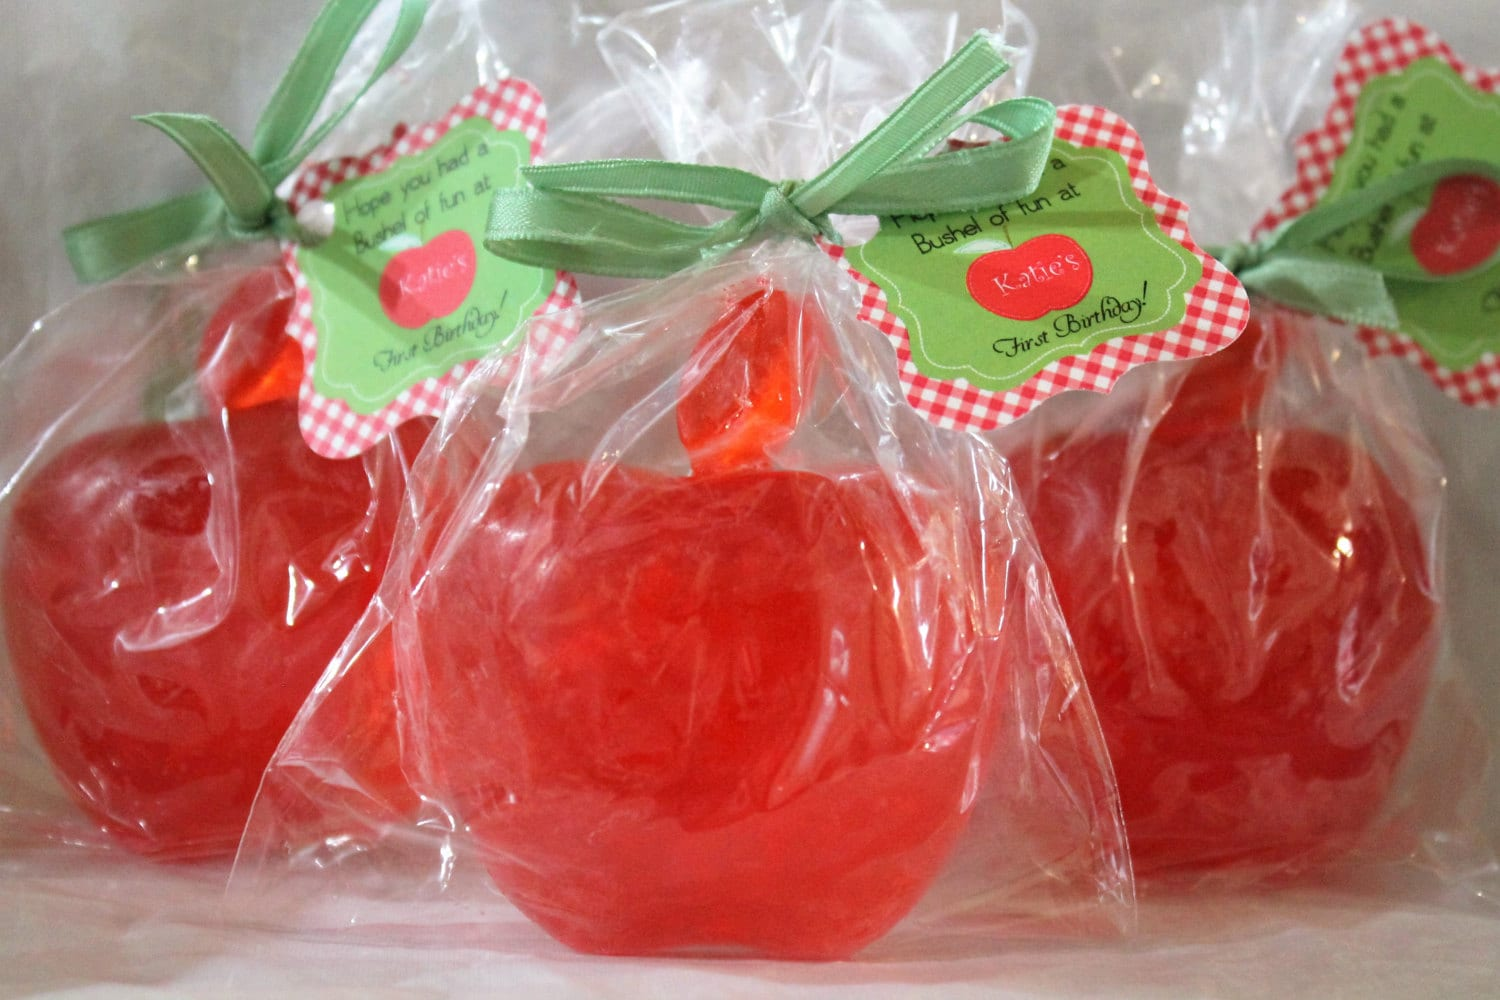 10 Apple Party Favor Soaps Wedding Favors Birthday Favors Etsy